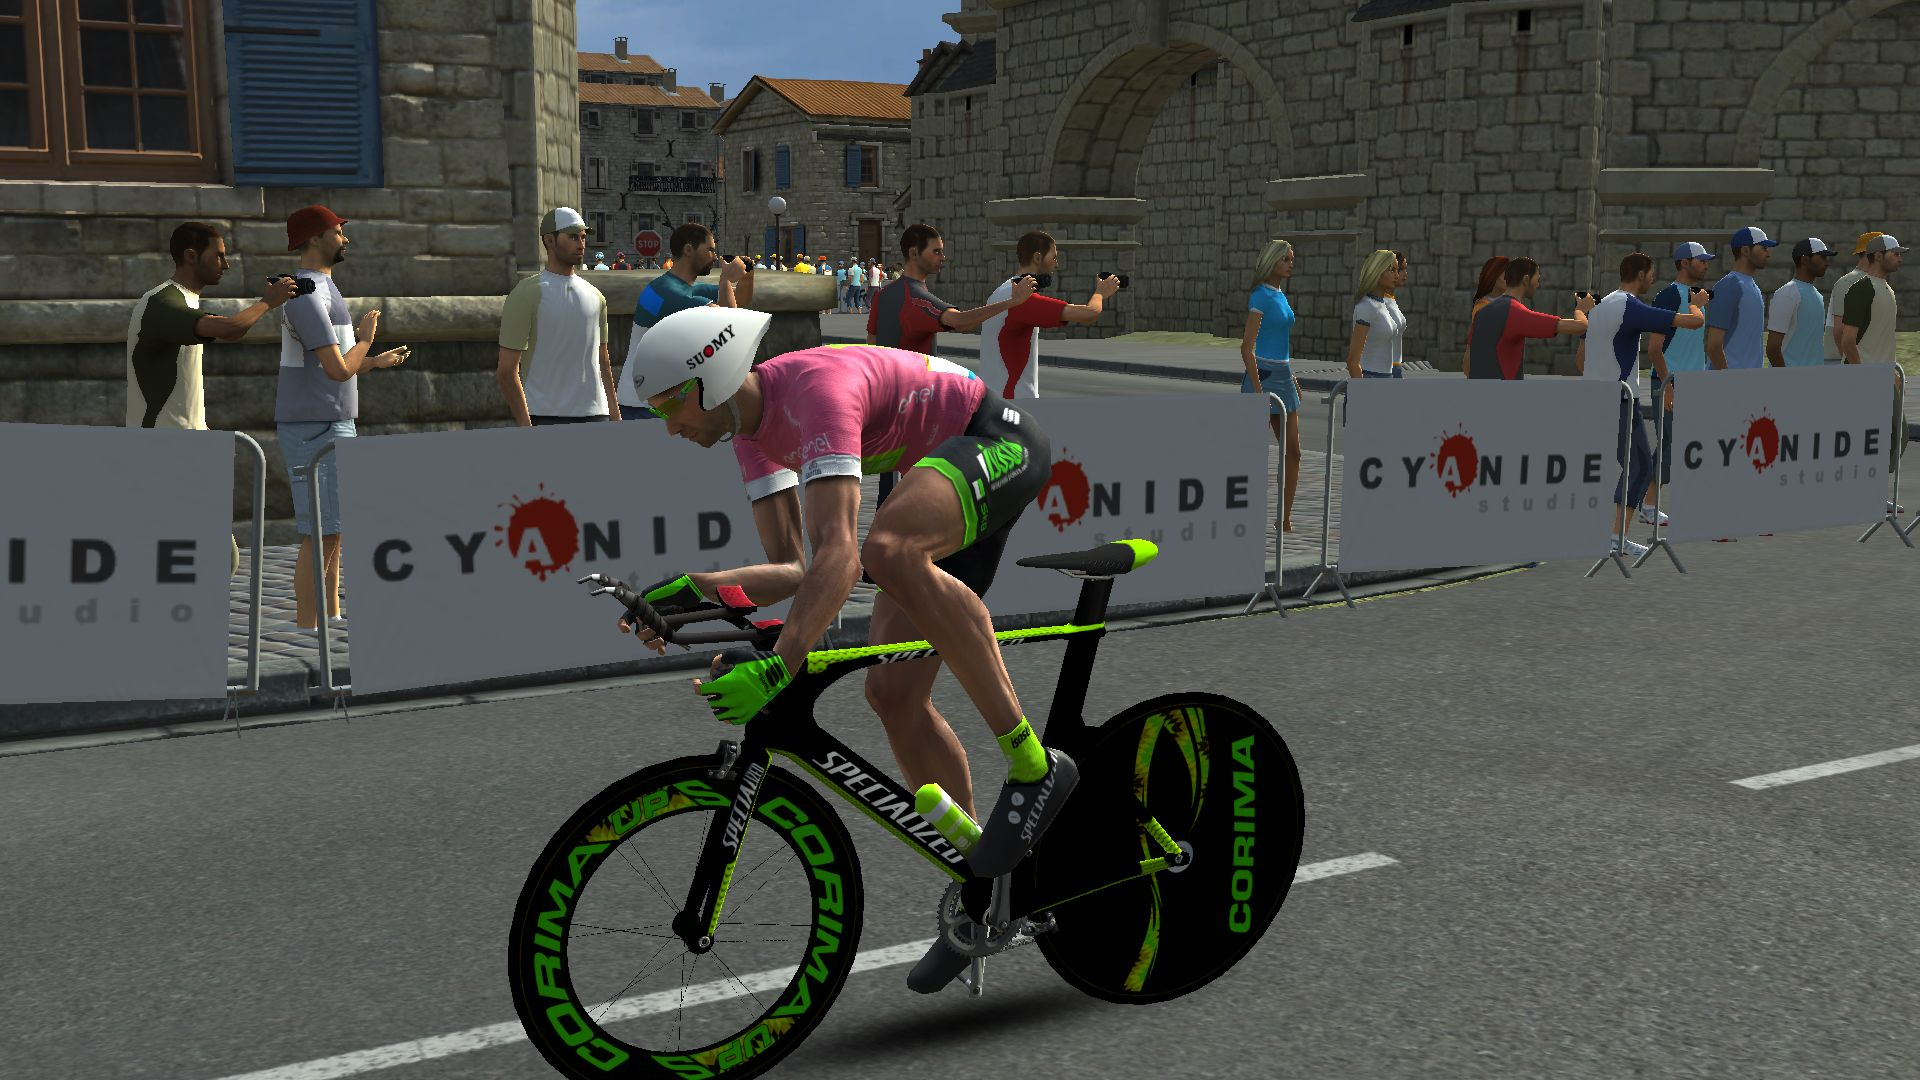 pcmdaily.com/images/mg/2019/Races/GTM/Giro/mg19_giro_21_PCM0569.jpg